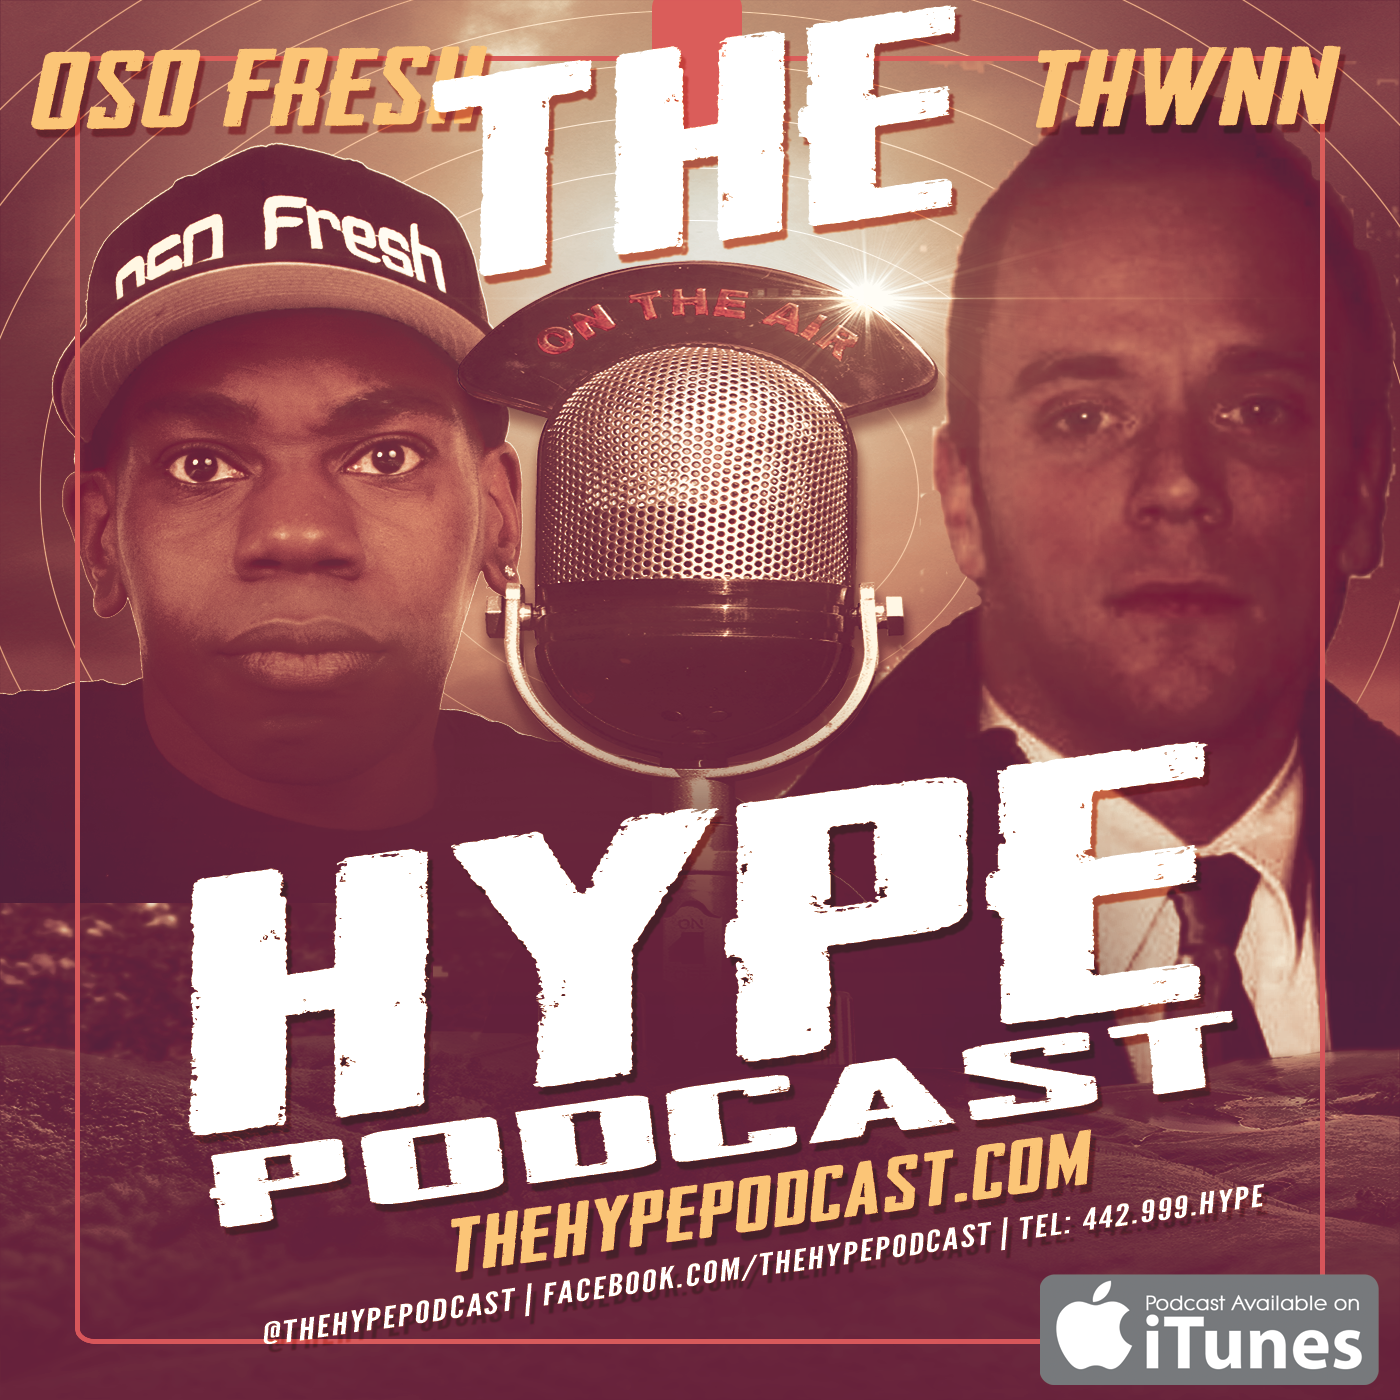 Artwork for The Hype Podcast Episode 120 Spice spice baby